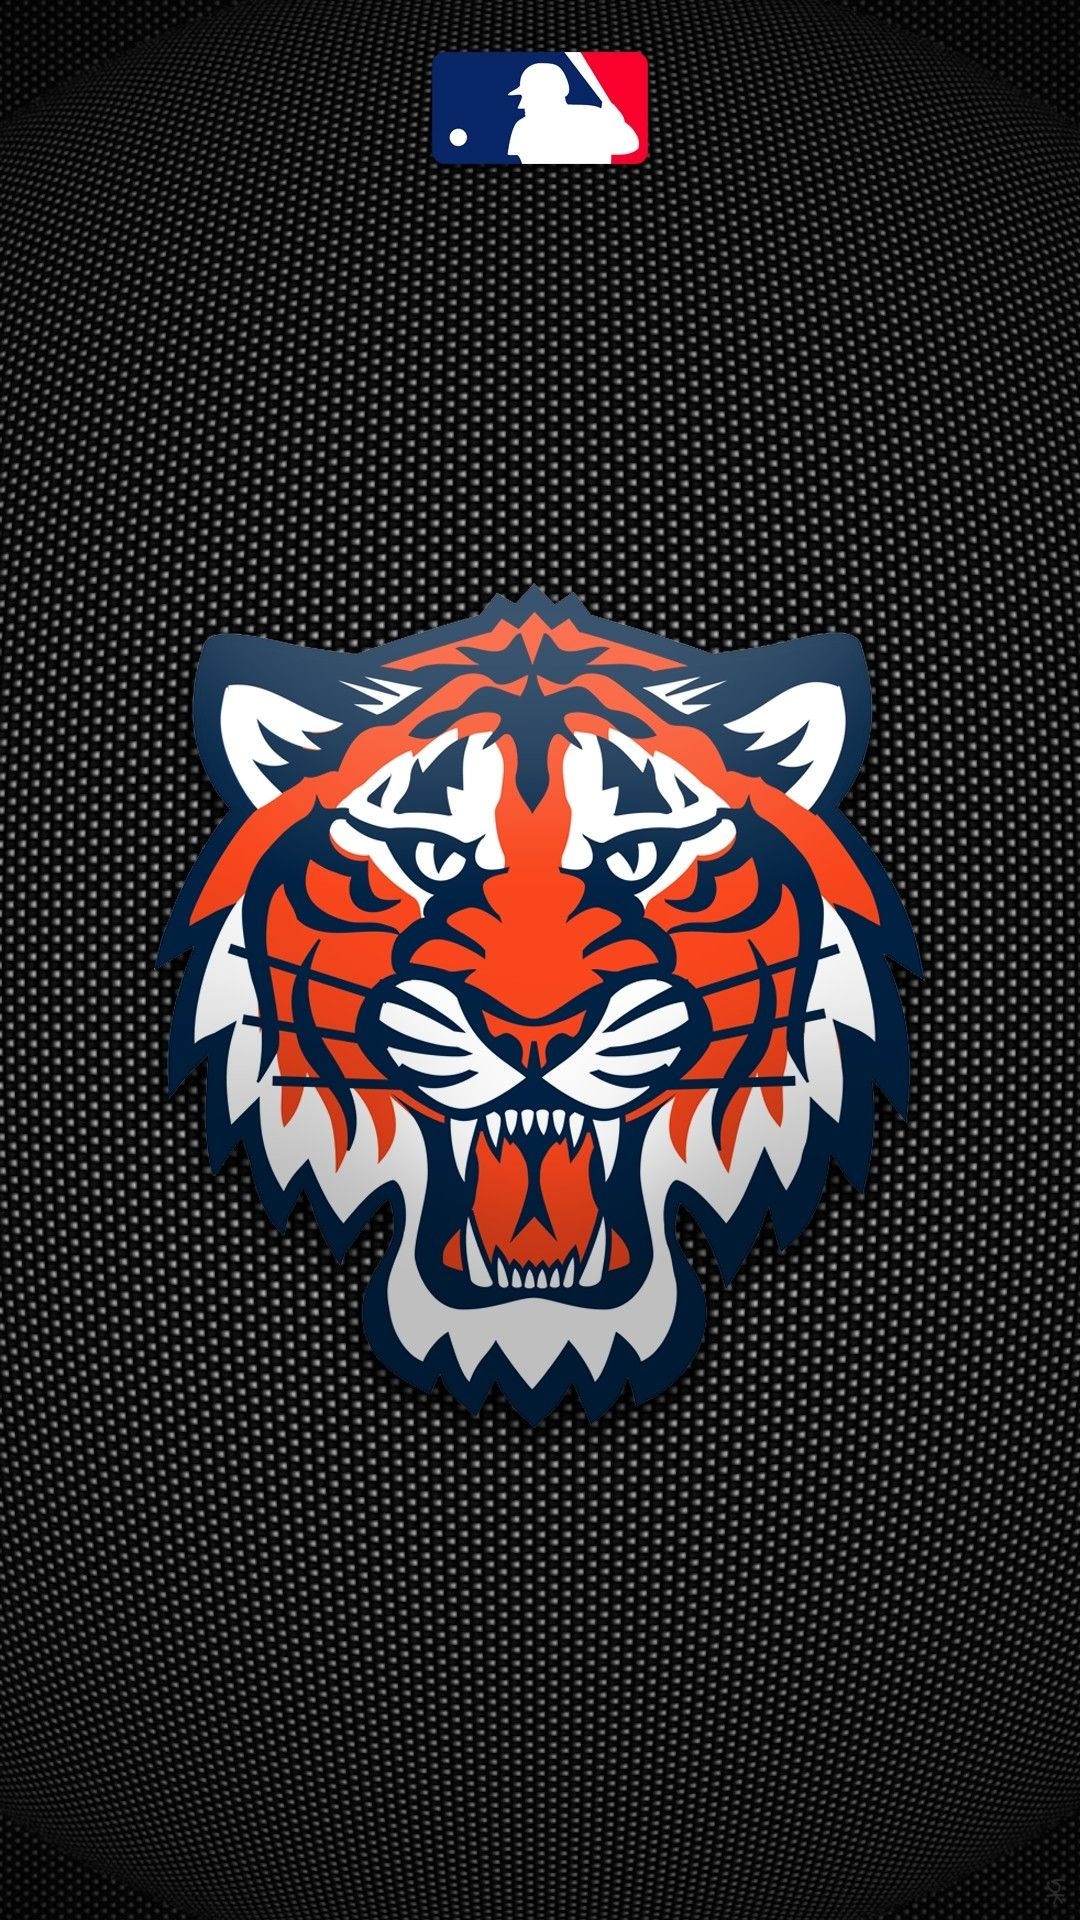 Detroit Tigers Iphone Wallpapers Top Free Detroit Tigers Iphone Backgrounds Wallpaperaccess